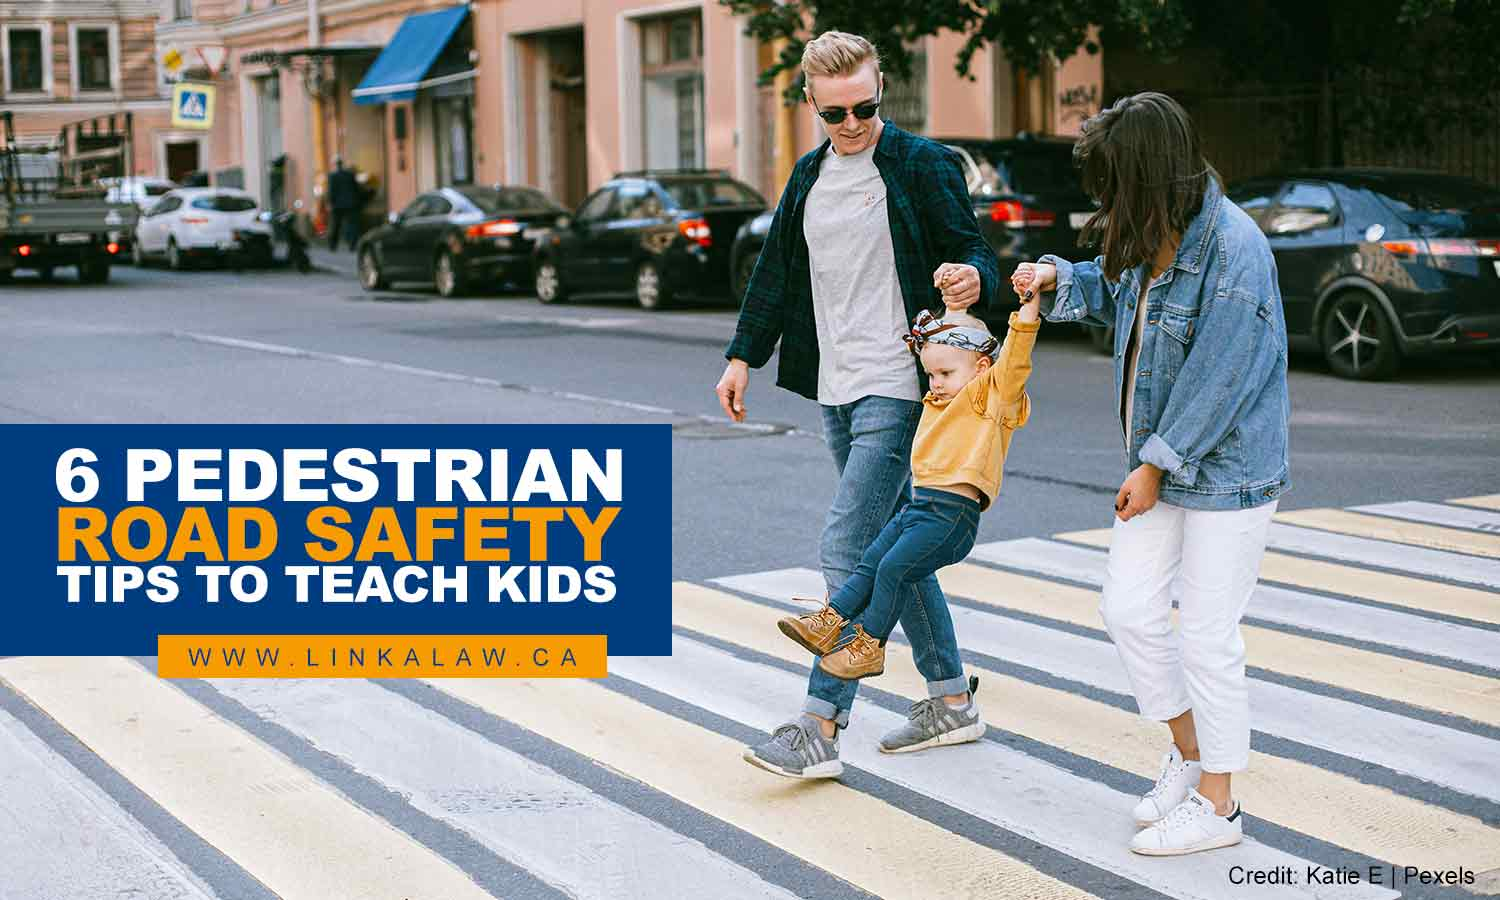 6 Pedestrian Road Safety Tips to Teach Kids